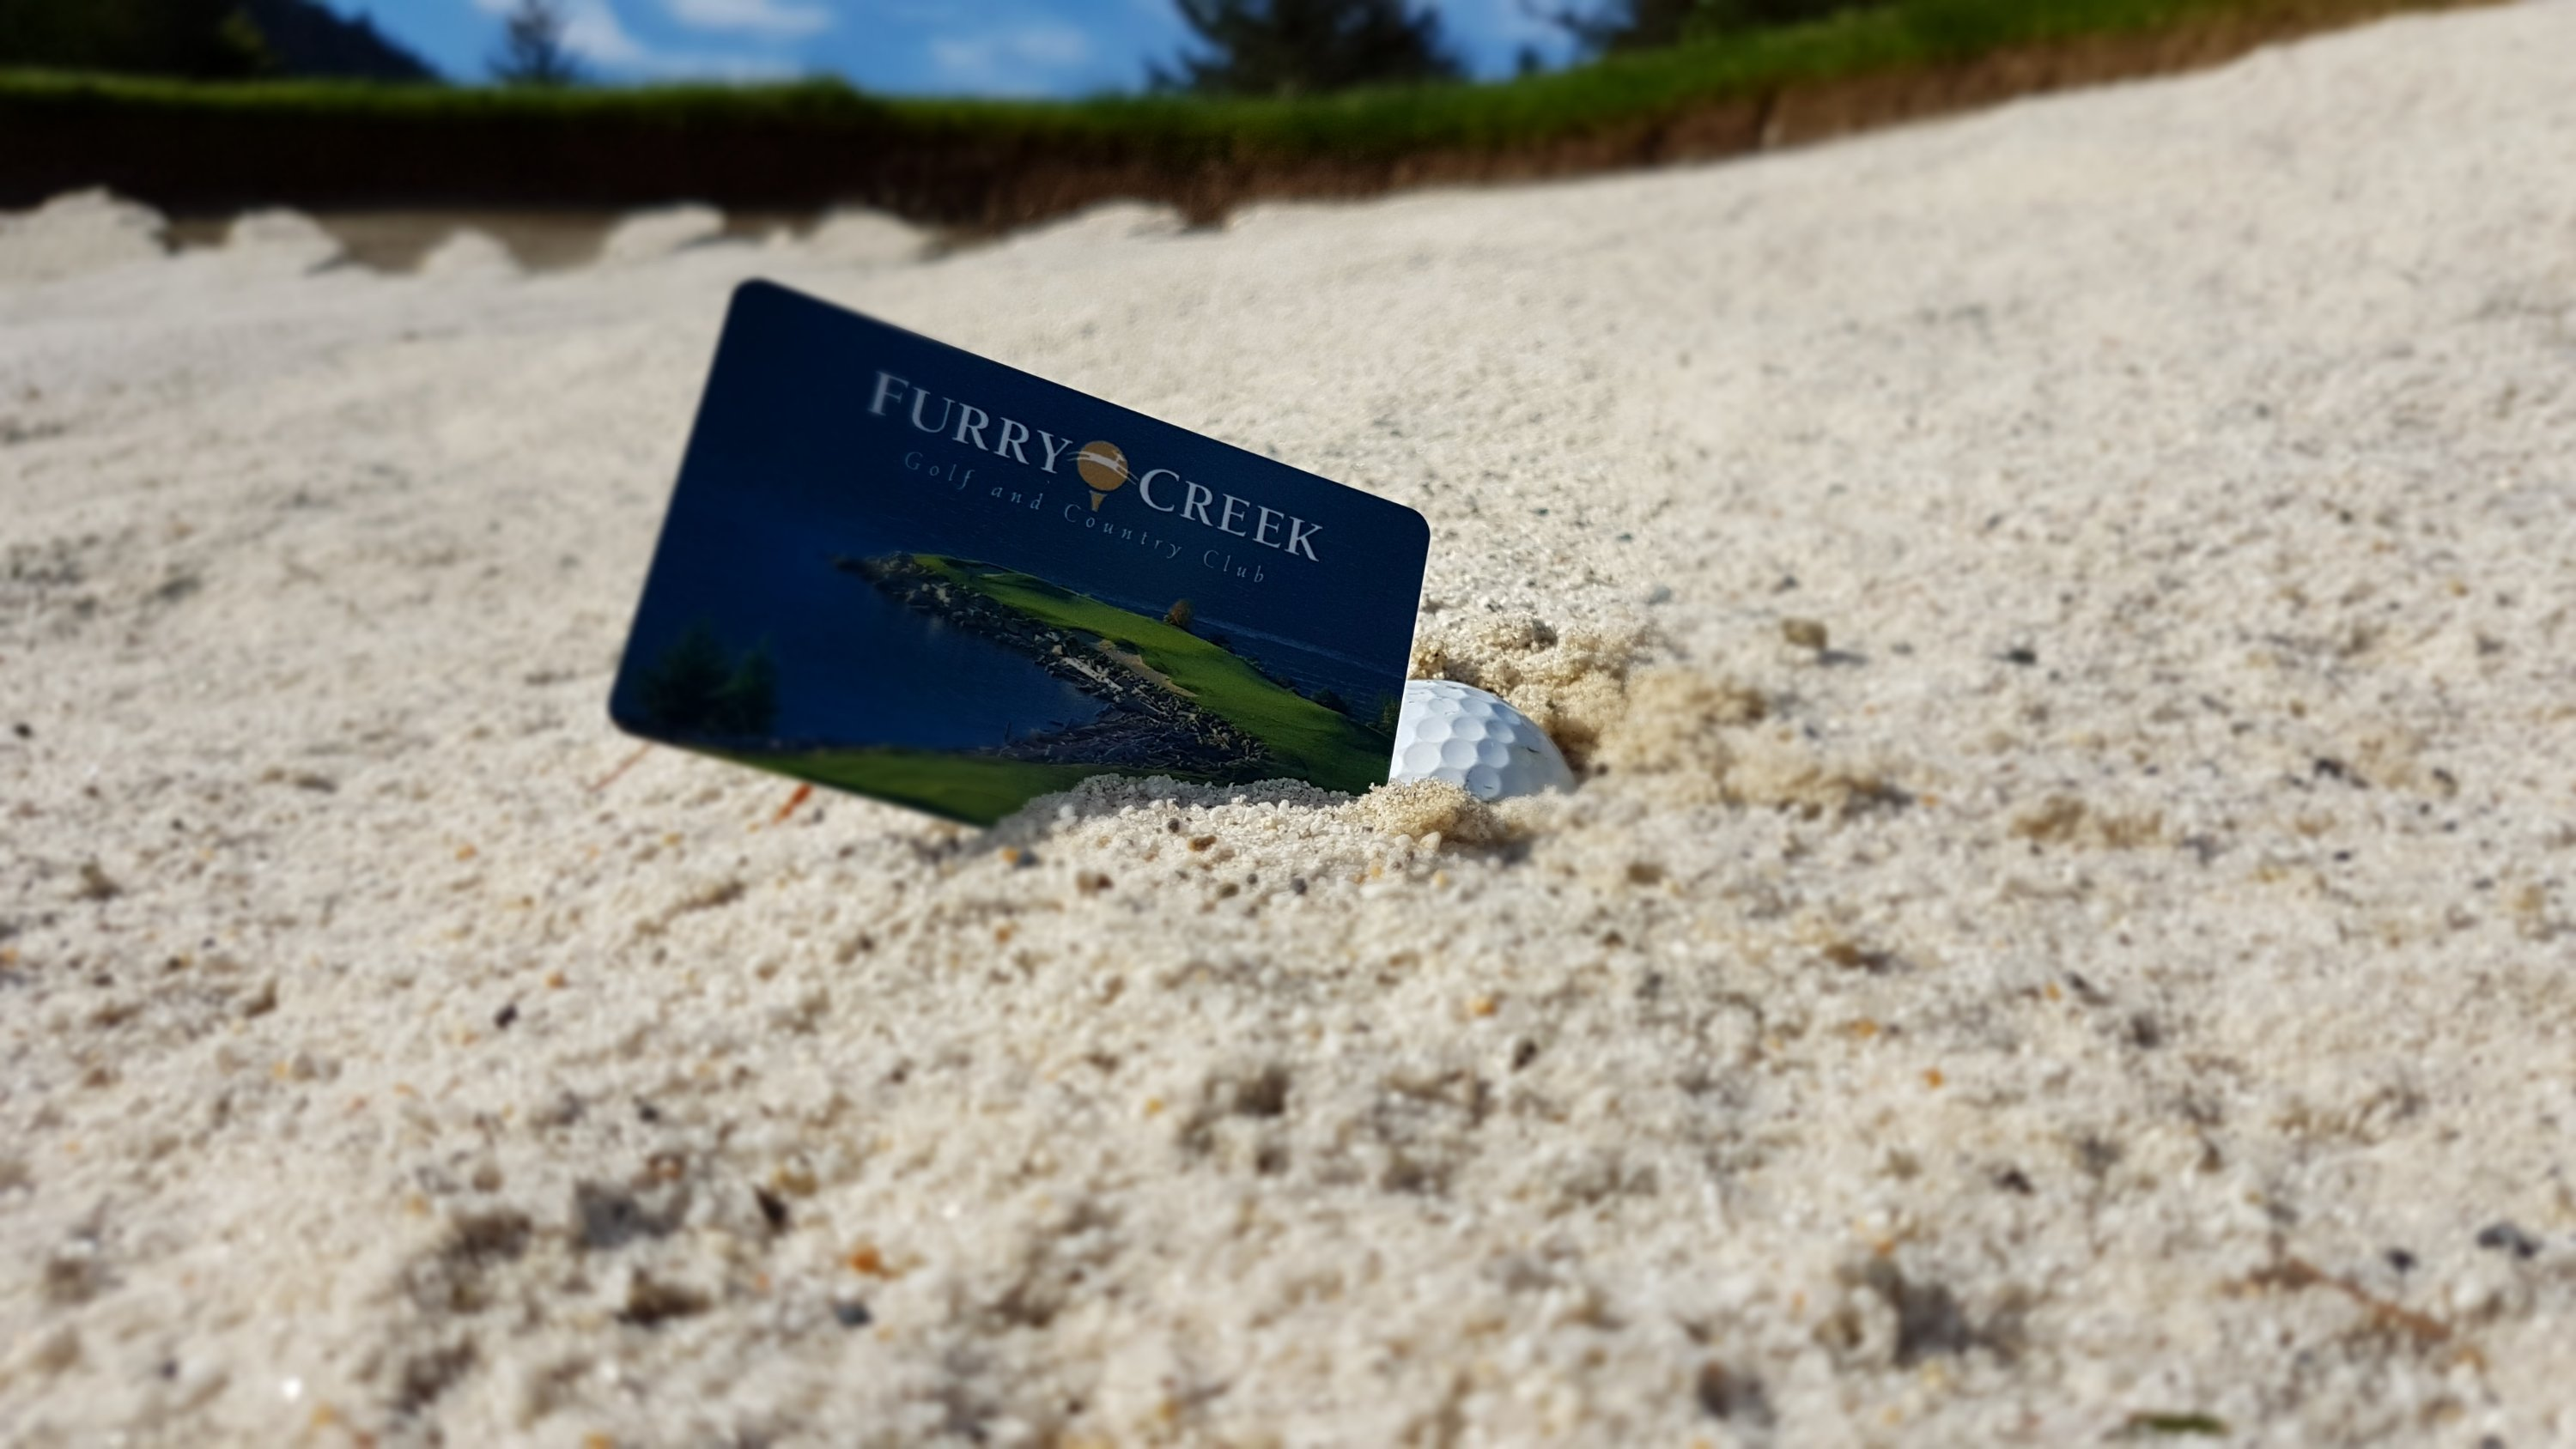 Furry creek golf bcs most scenic gift cards are hereuse them the new furry creek gift cards have arrived and they look great they can be used anywhere where your debit or credit cards can be used and they can be used negle Image collections